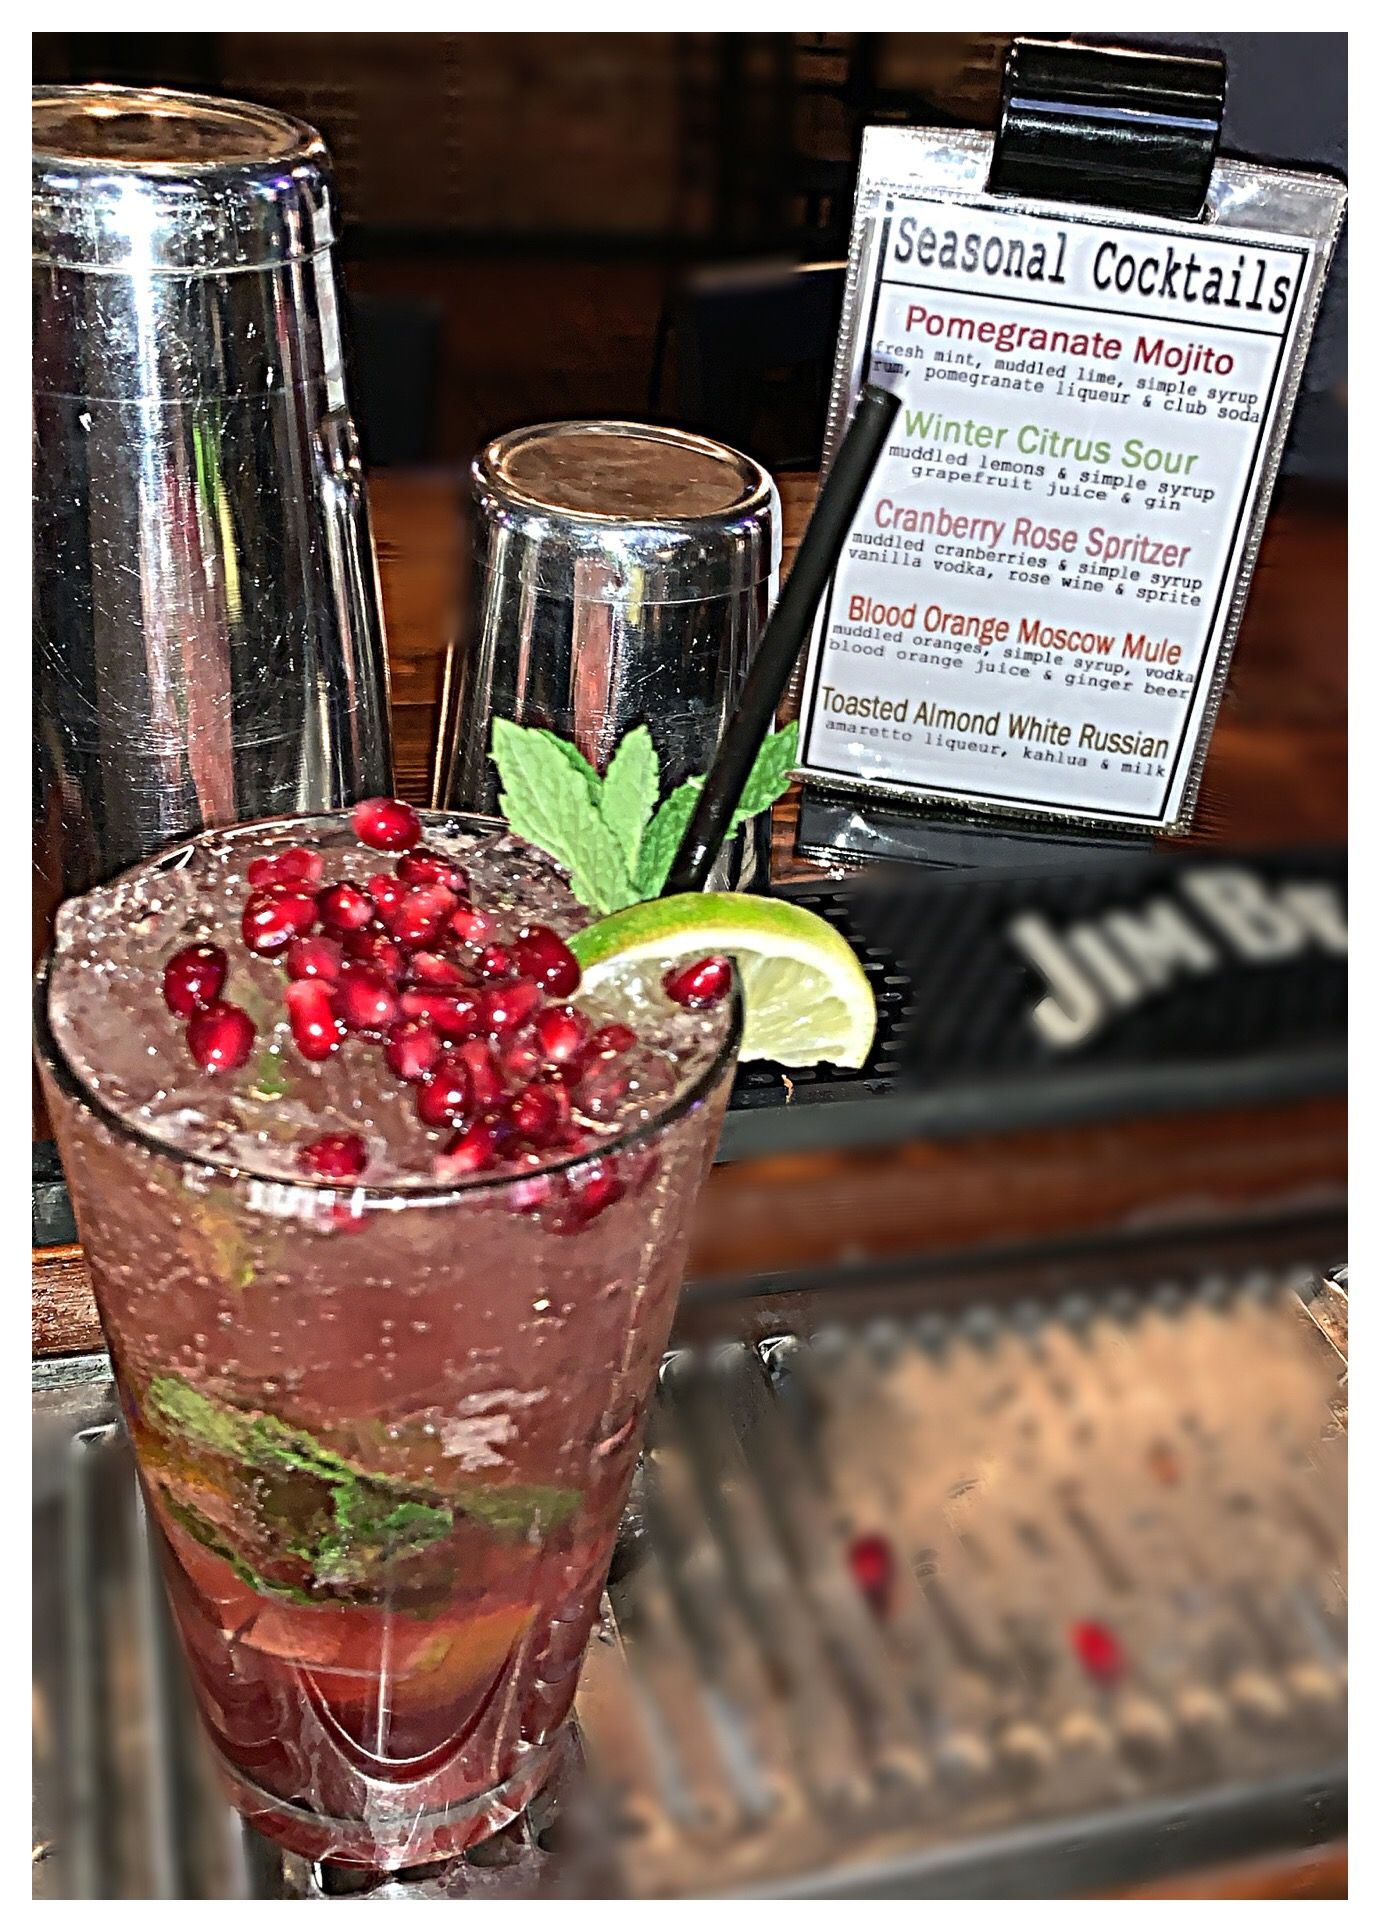 Pin By Kyleigh Garbrick On The Brickyard Restaurant Ale House Pomegranate Mojito Toasted Almonds Spritzer